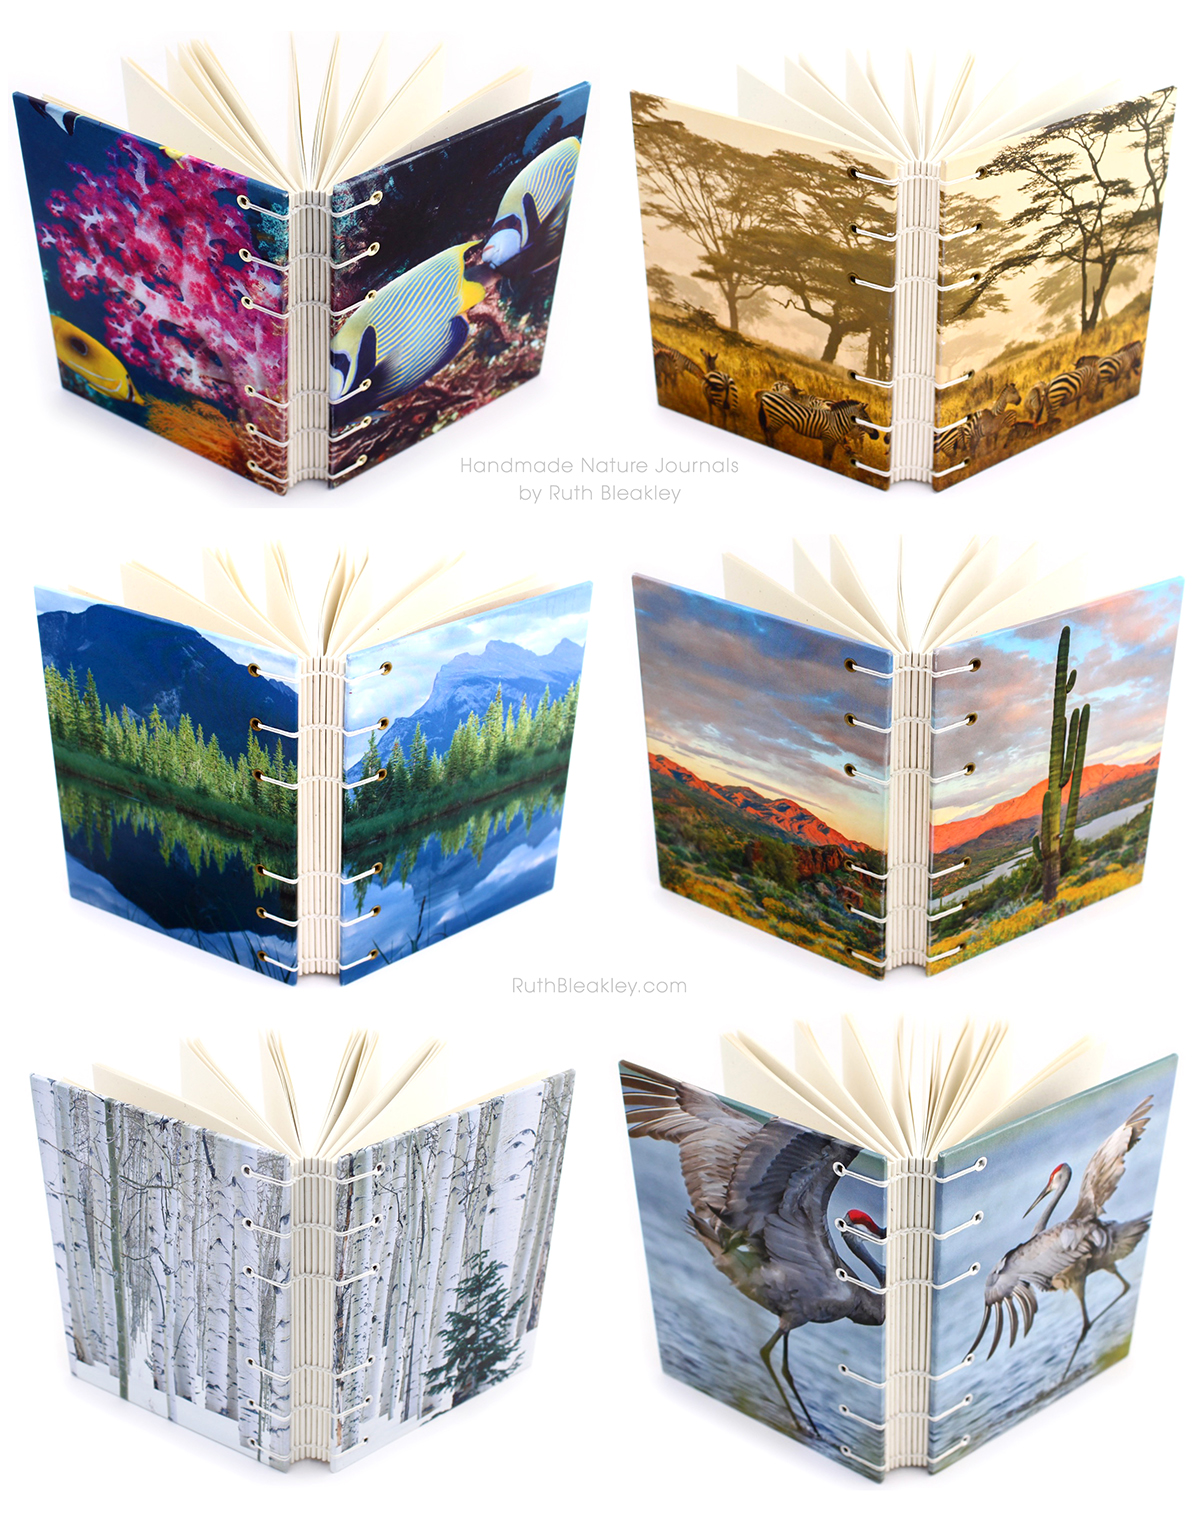 Nature Journals handmade by Ruth Bleakley that lay flat when open